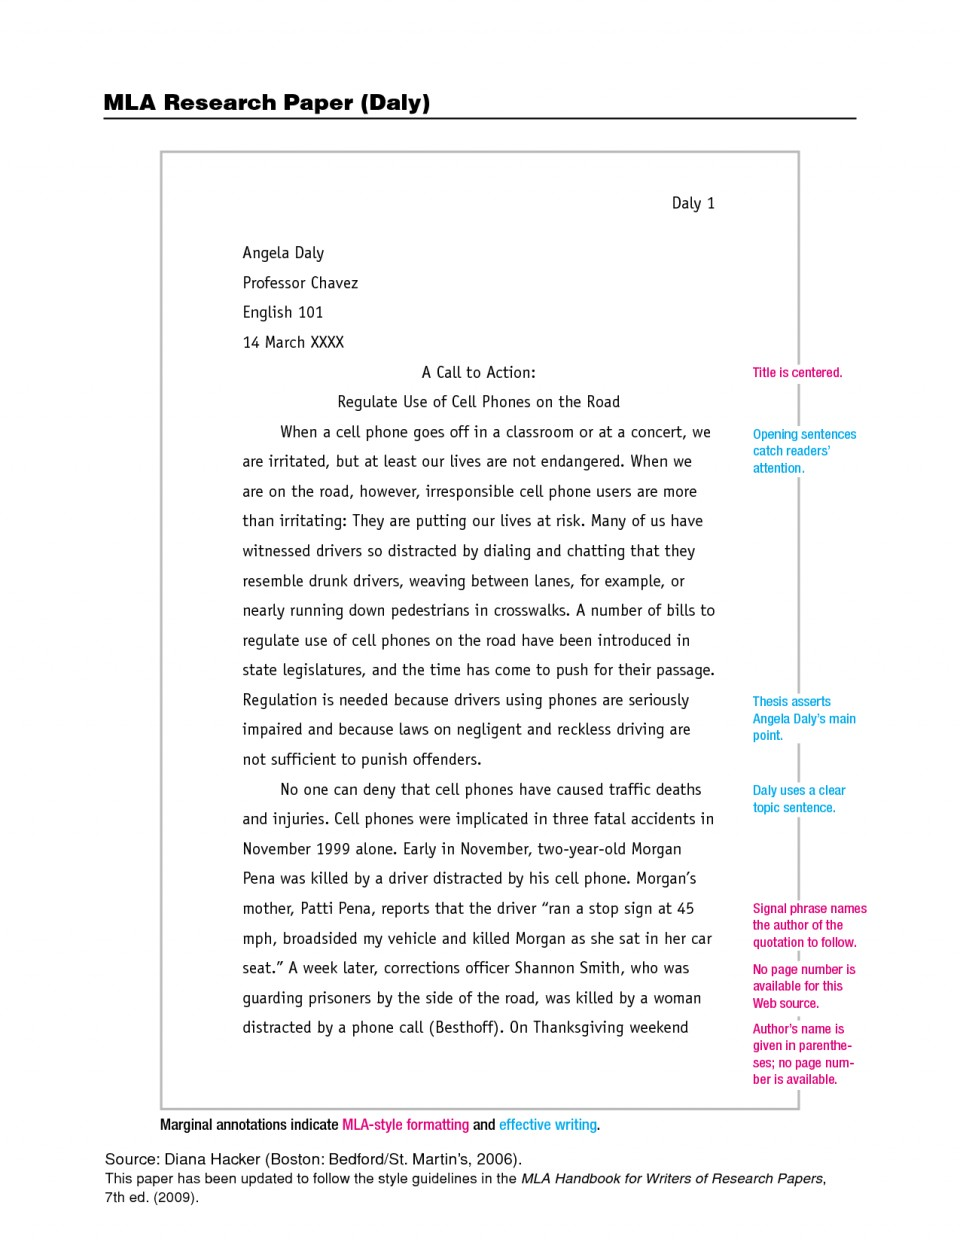 002 Research Paper Format Stunning Apa Writing Style Sample 2010 960